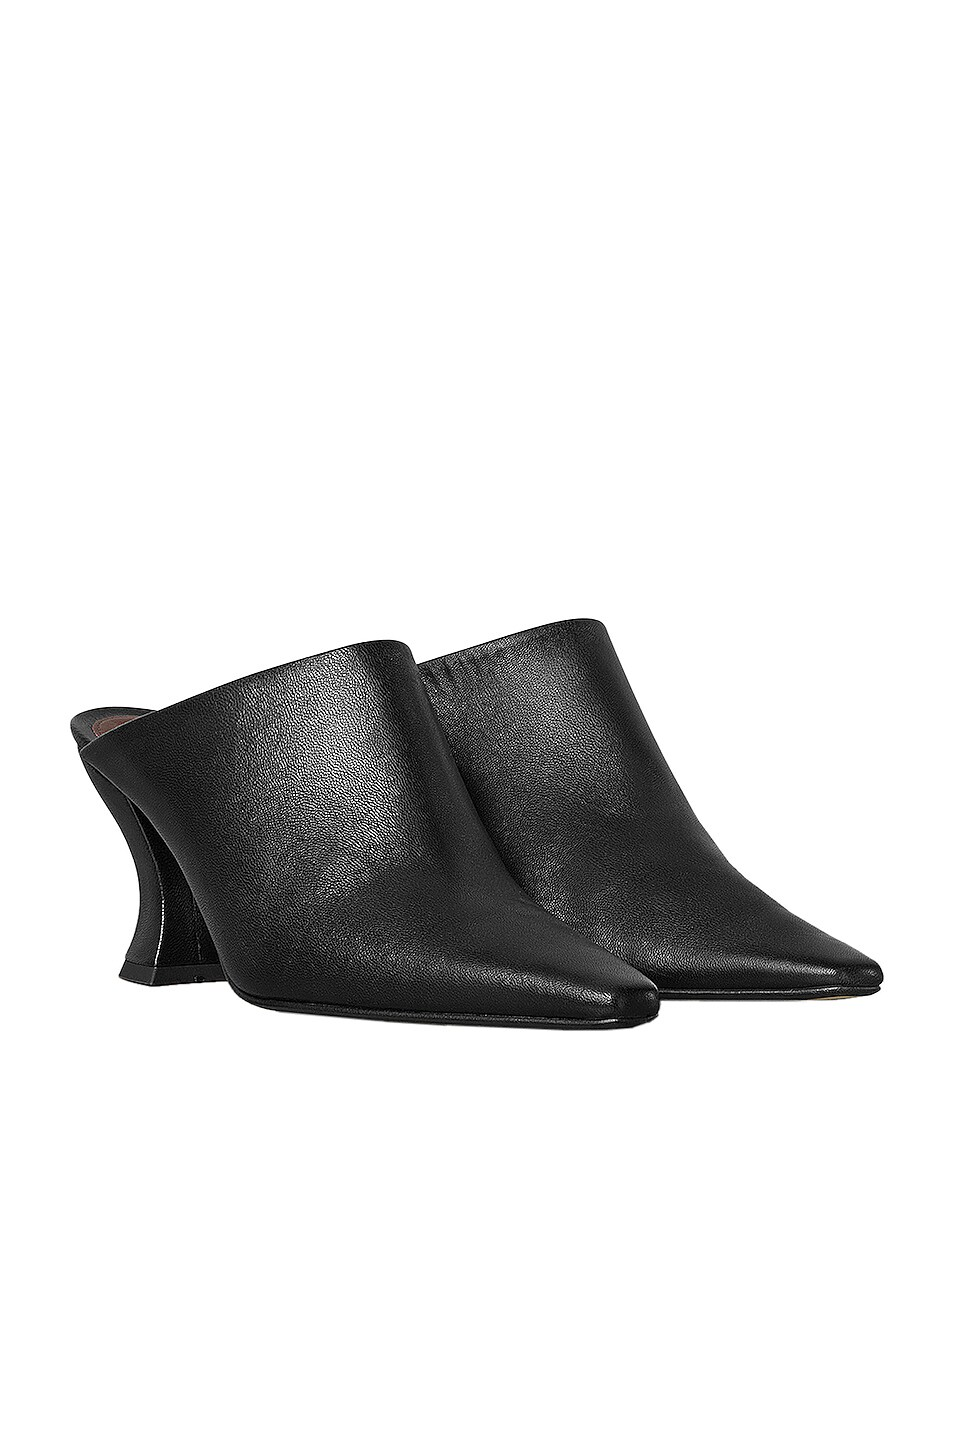 Image 2 of Bottega Veneta Leather Pointed Toe Mules in Black